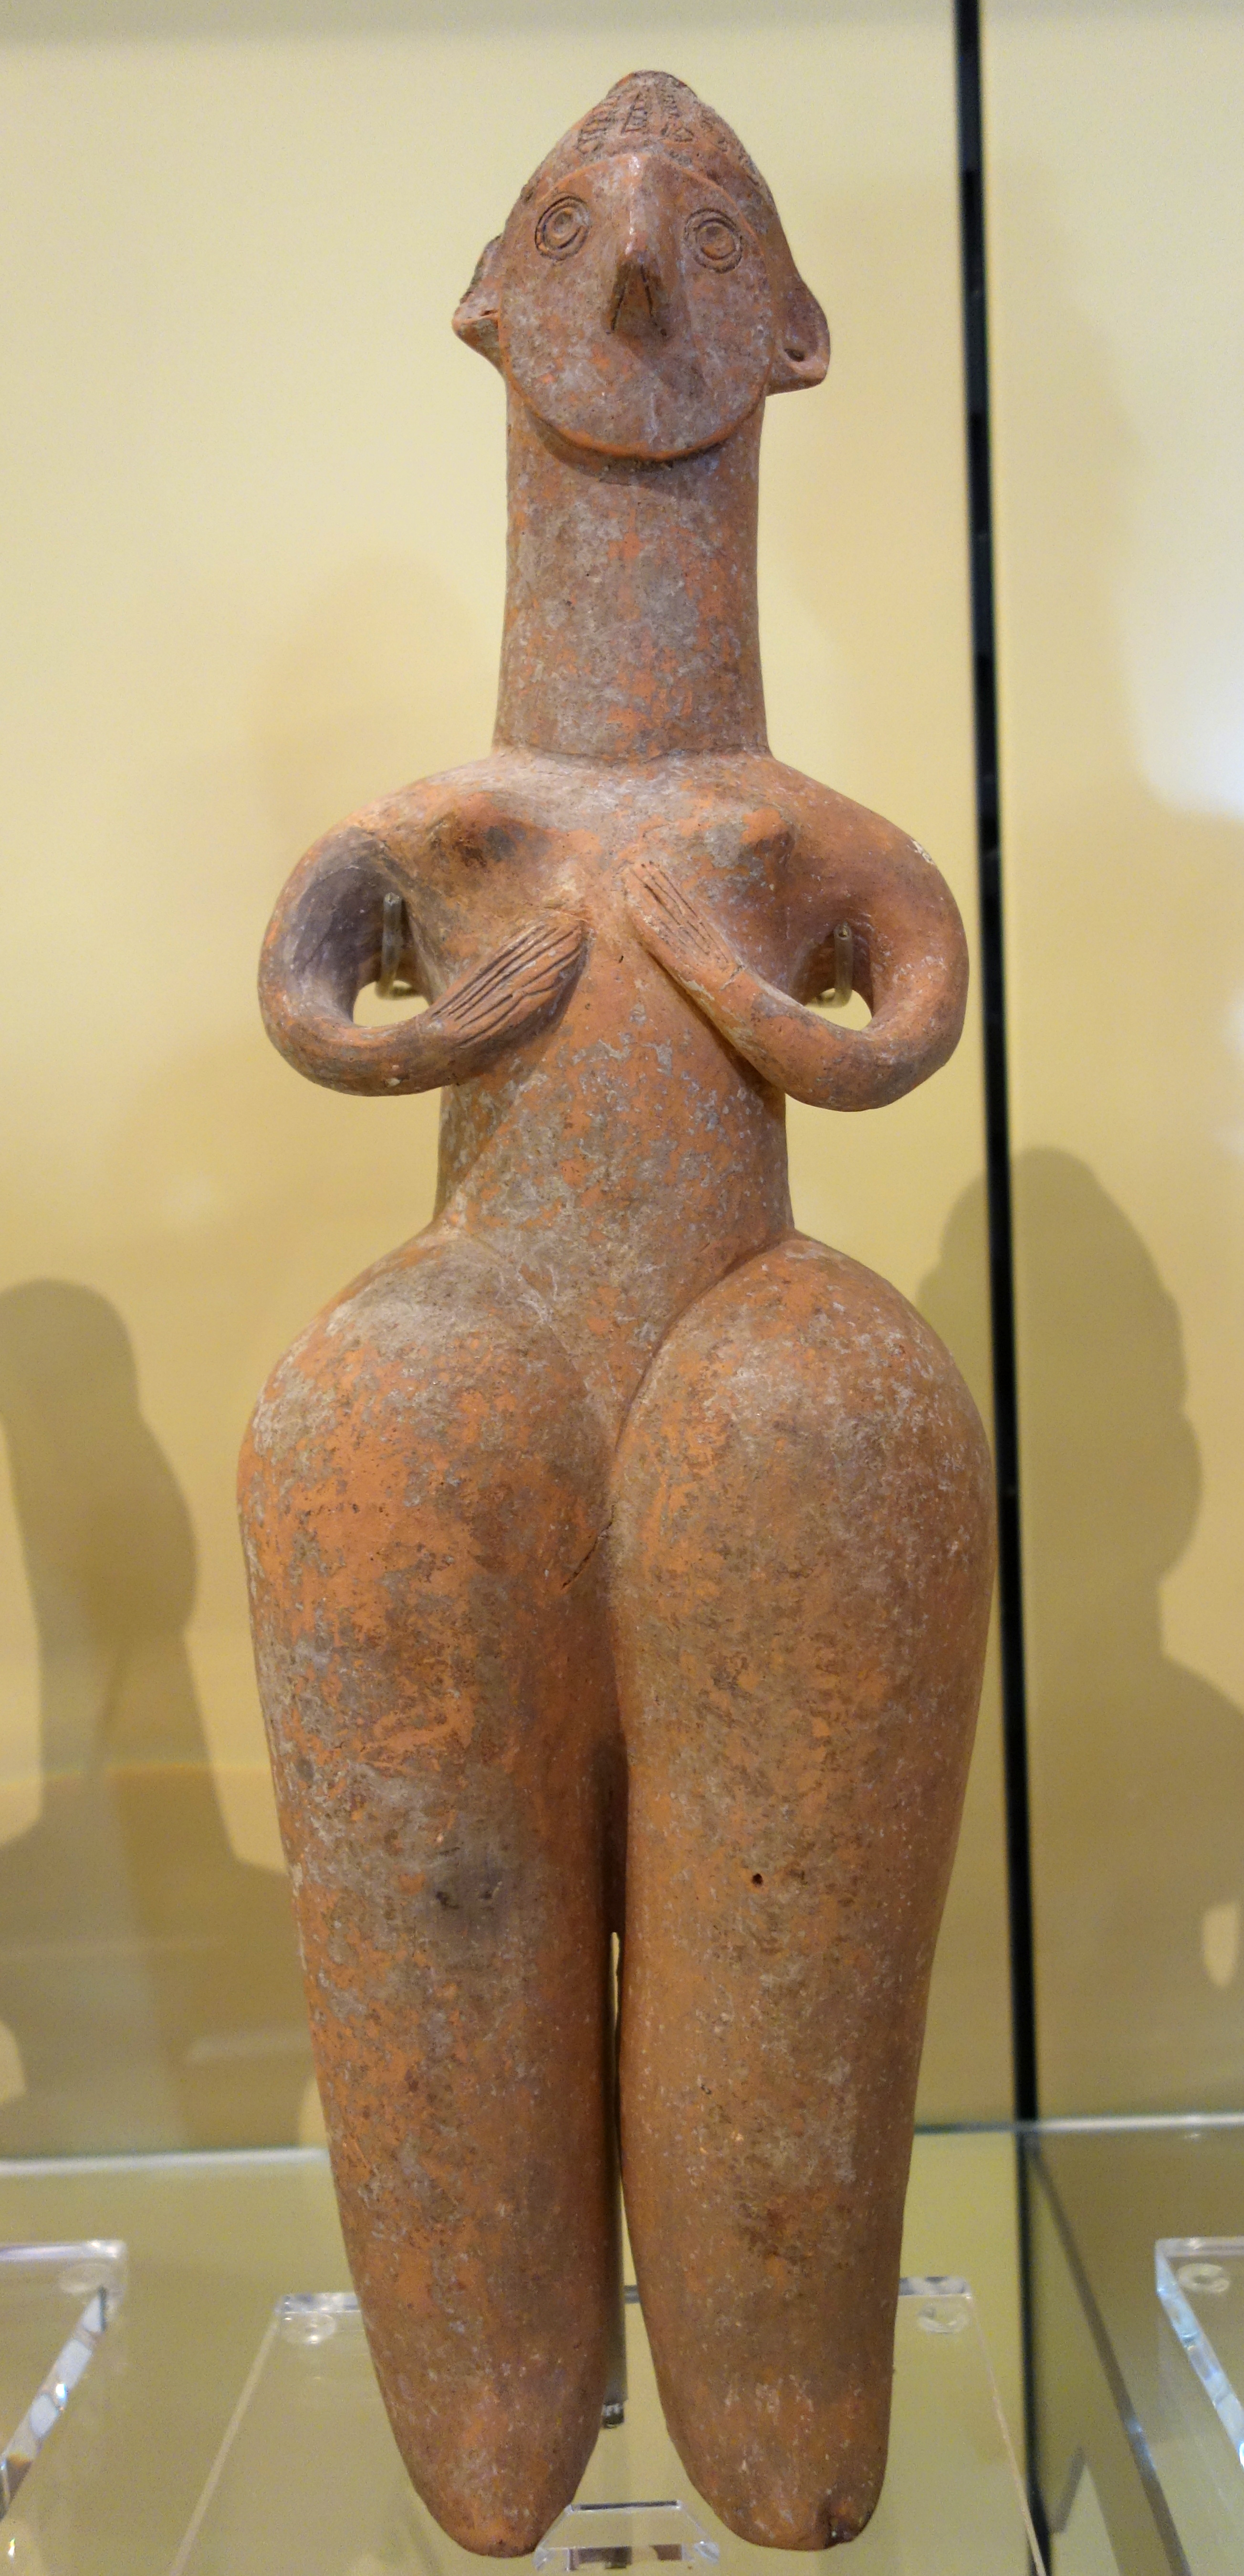 Amlash-style mother goddess, 4 of 5, perhaps Amlash, Northern Iran, Iron Age, c. 1200-900 BC, earthenware - Royal Ontario Museum - DSC04536.JPG